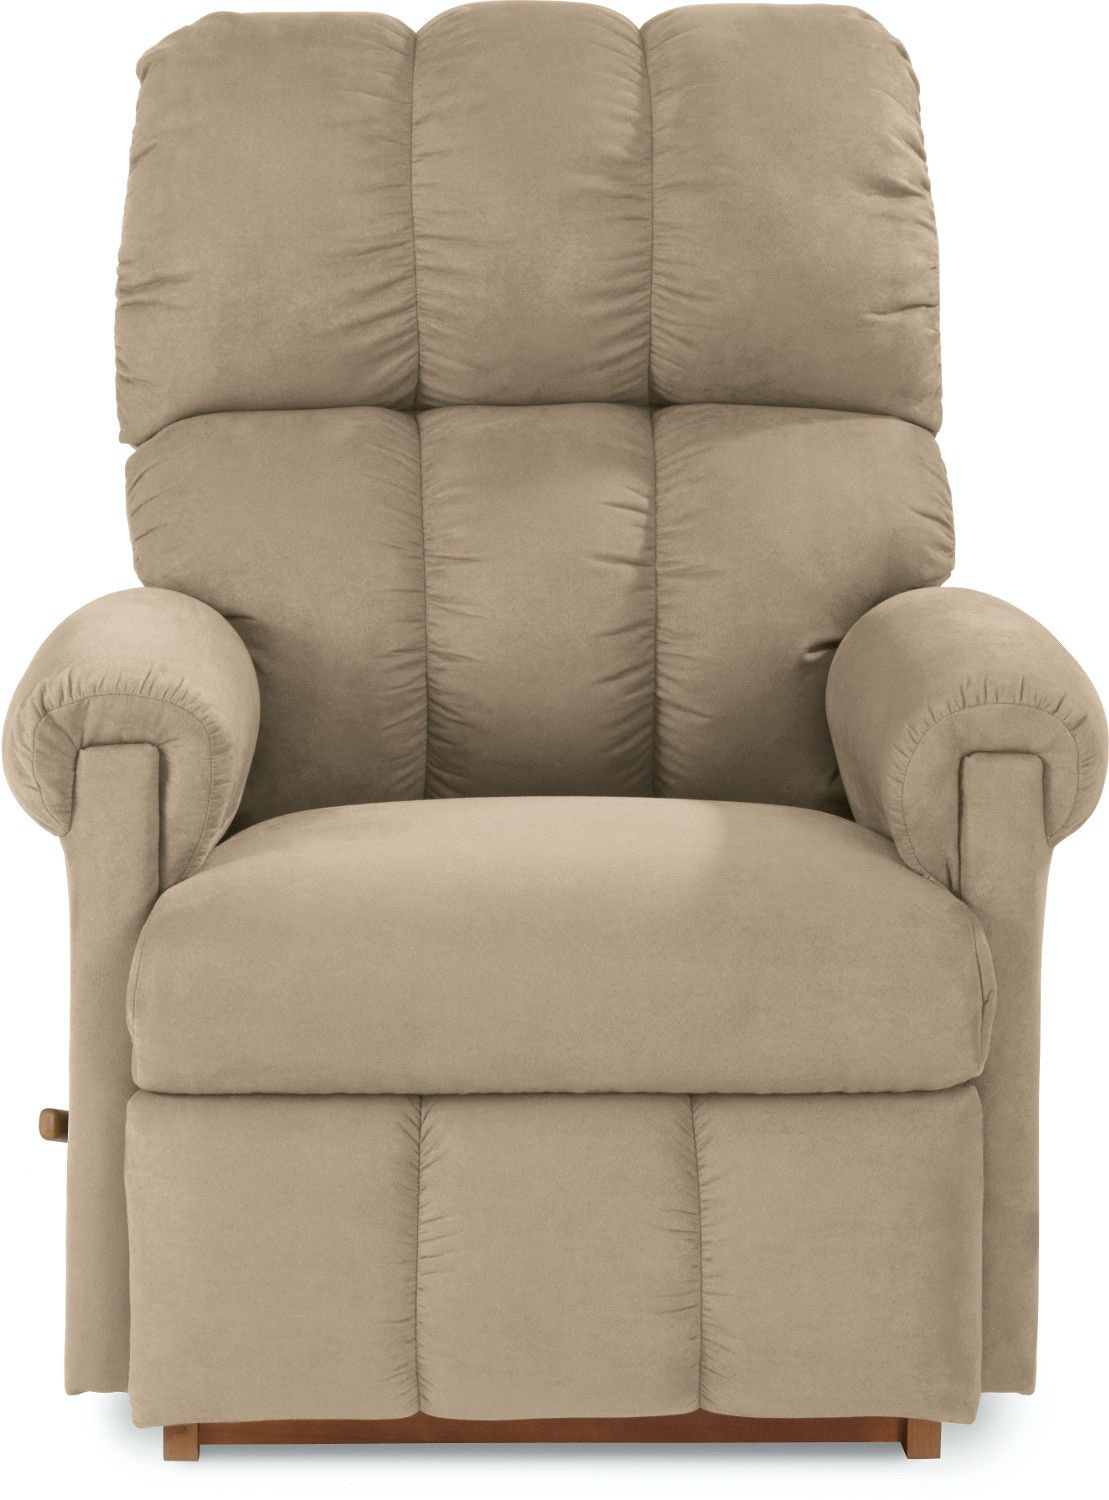 lazy boy chairs on sale bamboo chair mats la z furniture weiss company latrobe pa reclina rocker recliner 10403